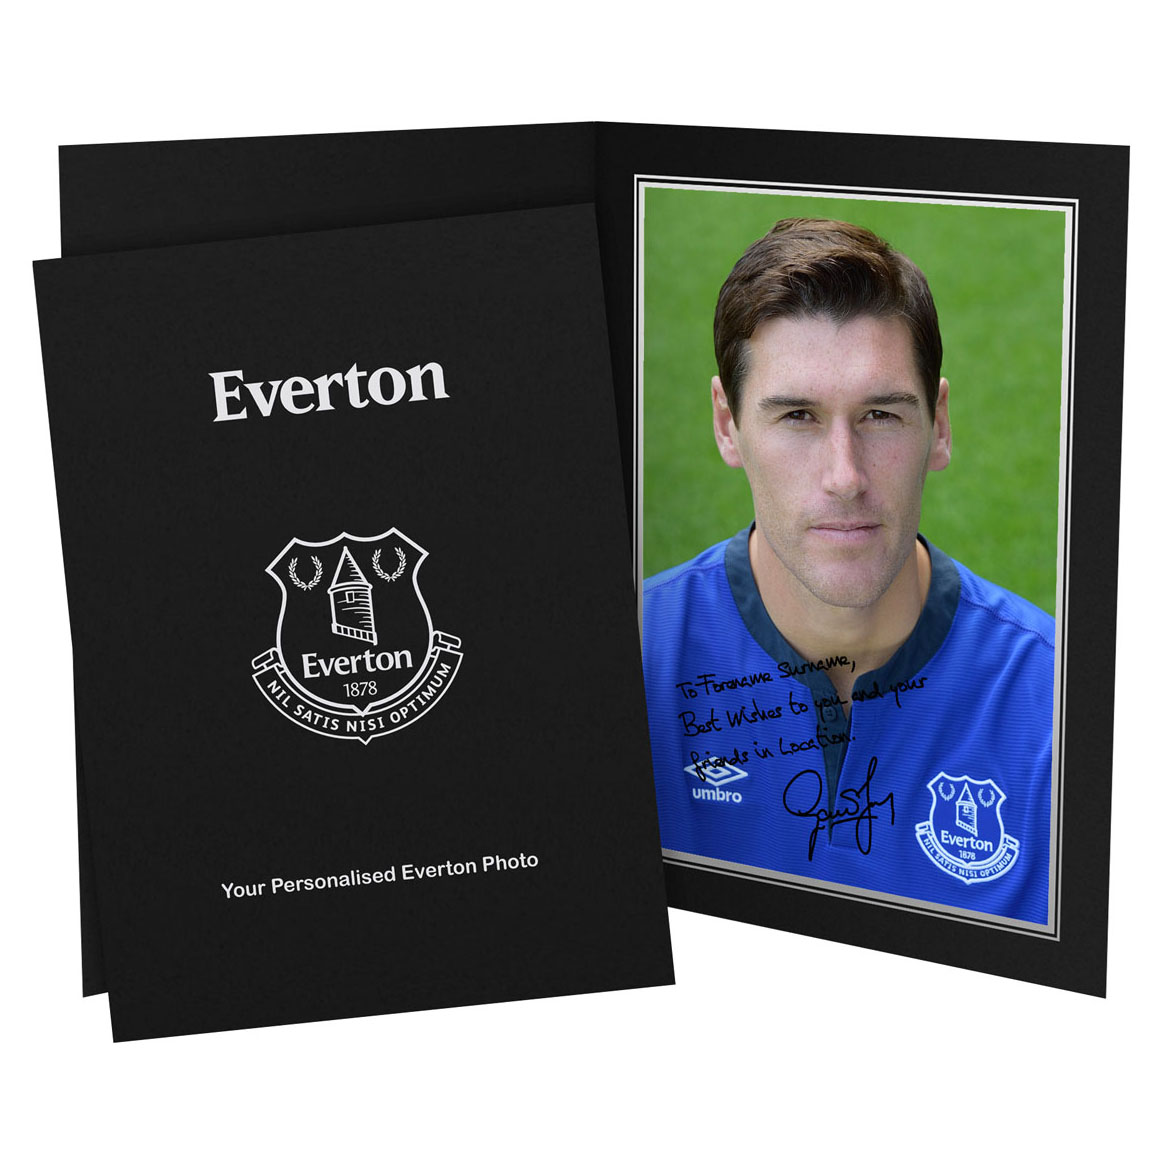 Everton Personalised Signature Photo in Presentation Folder - Barry